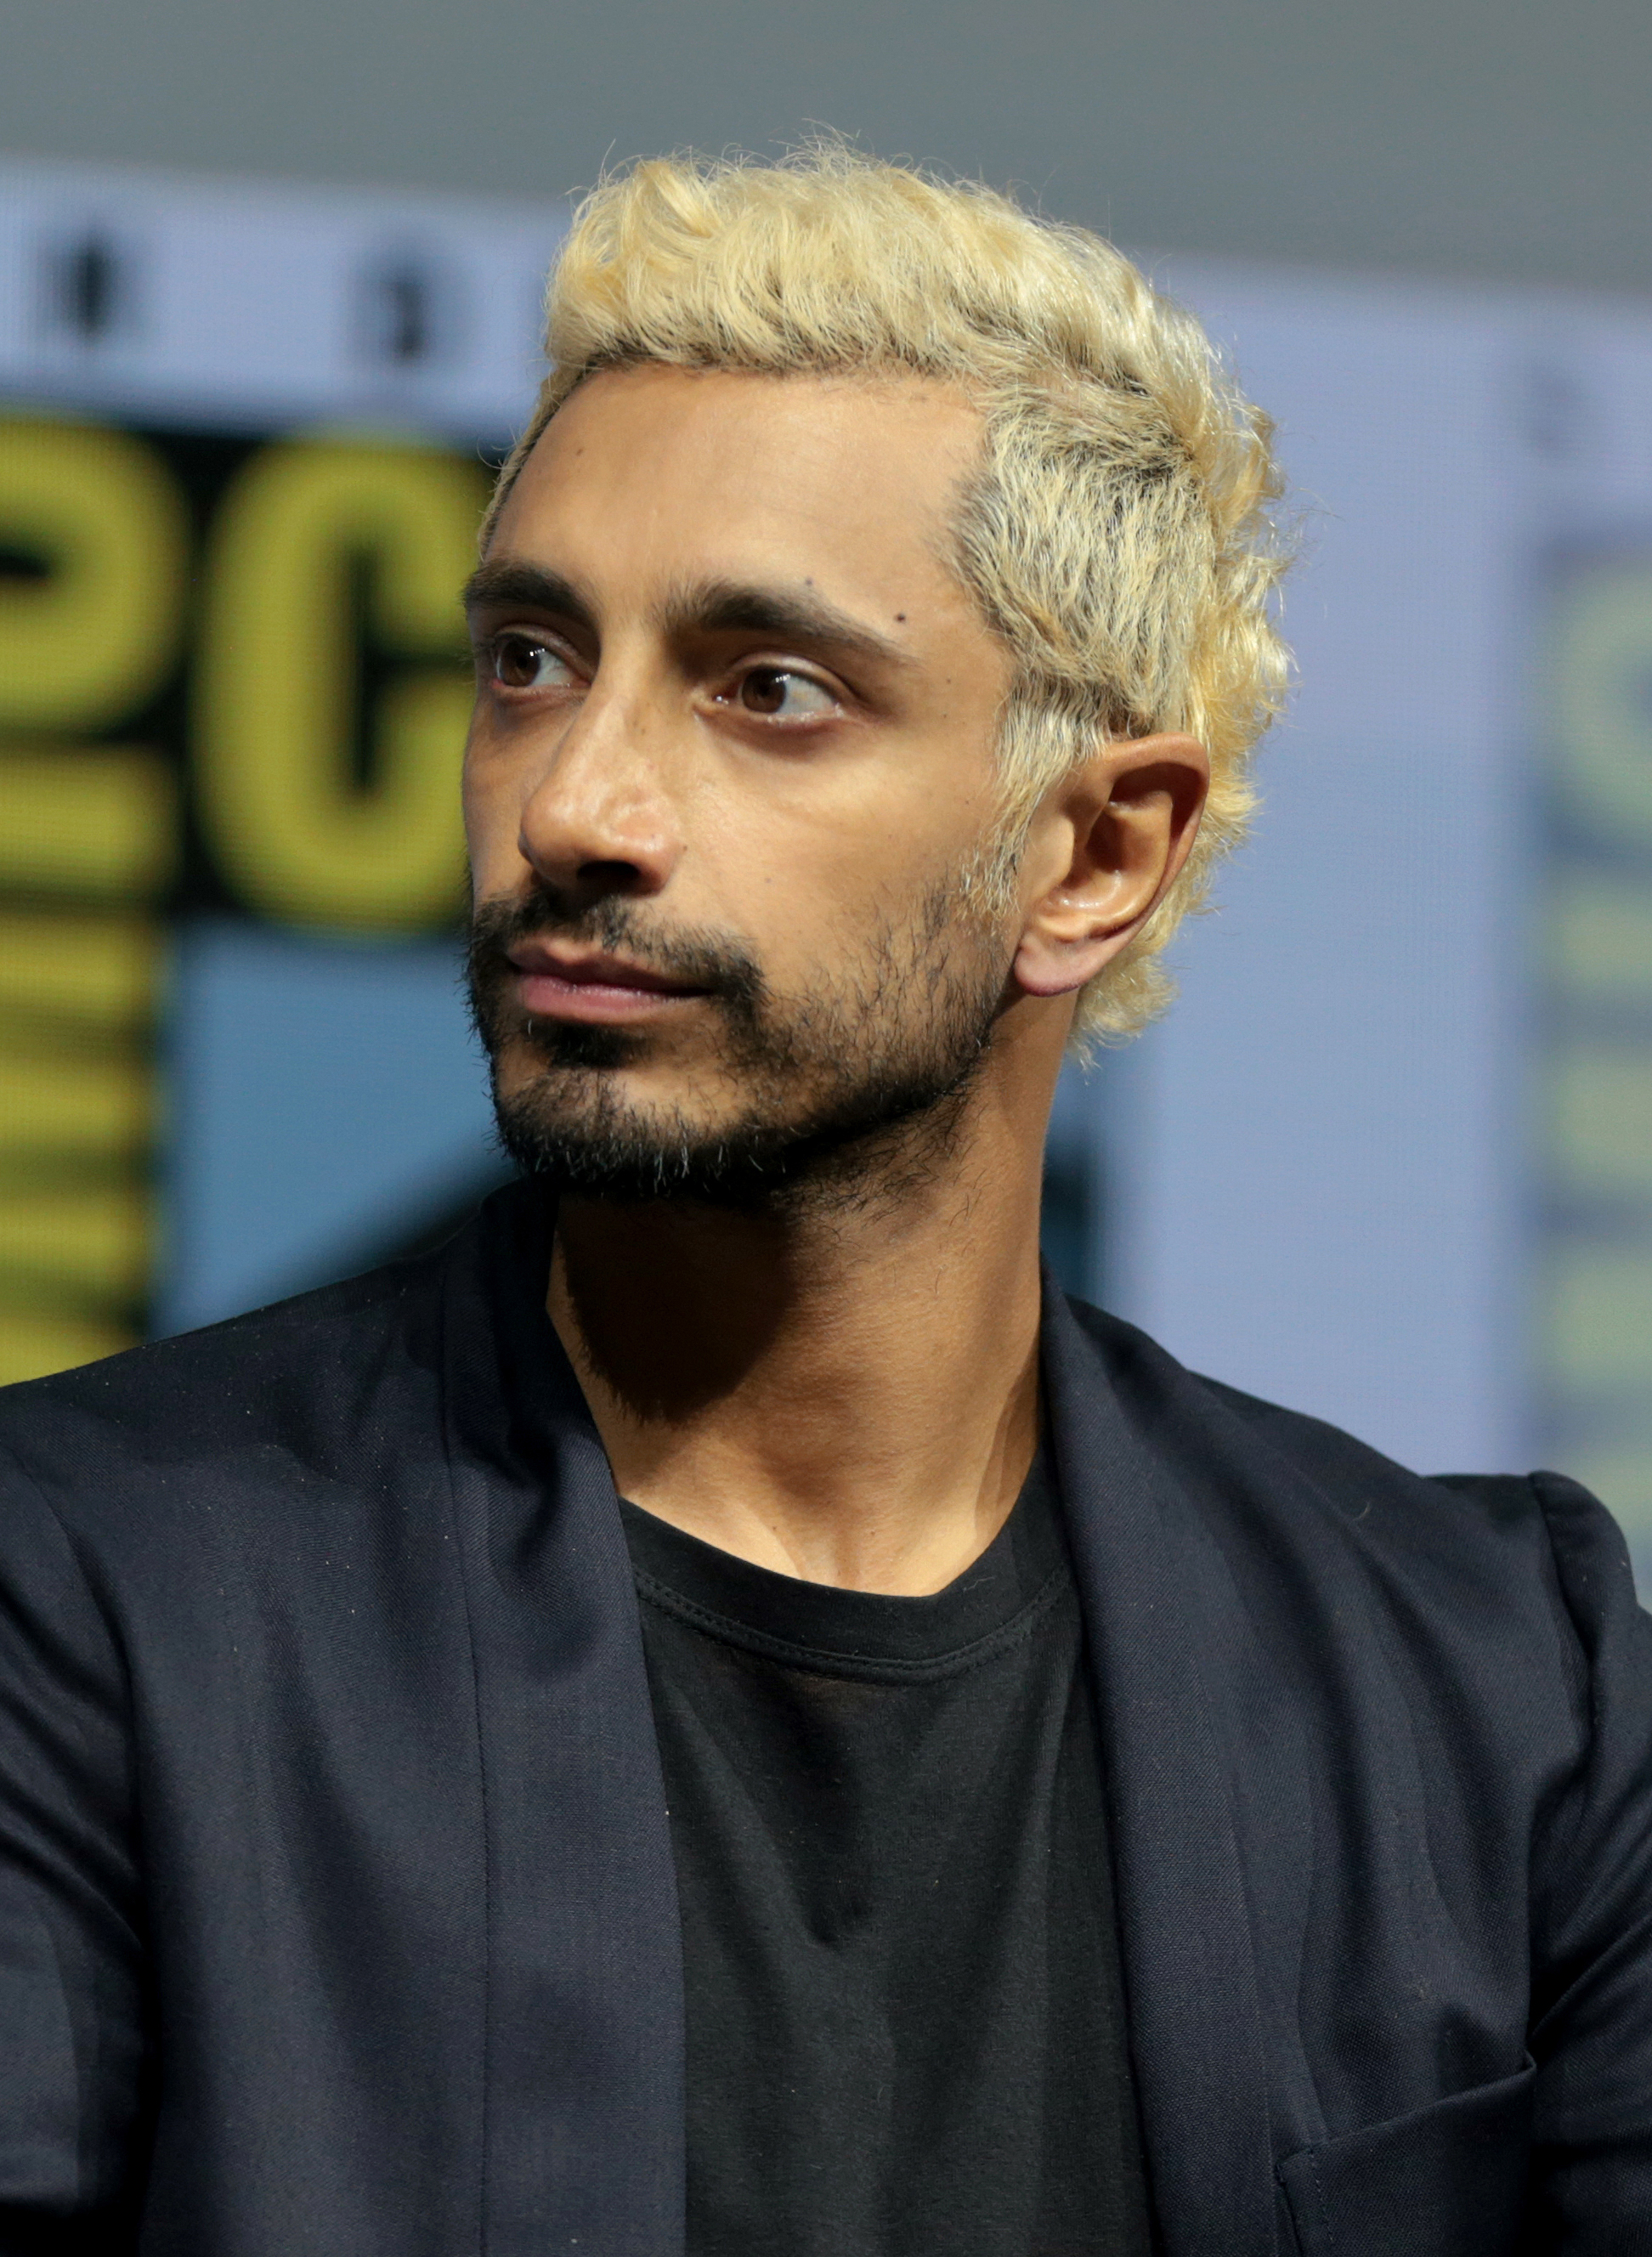 084880d3d0e Riz Ahmed - Wikipedia